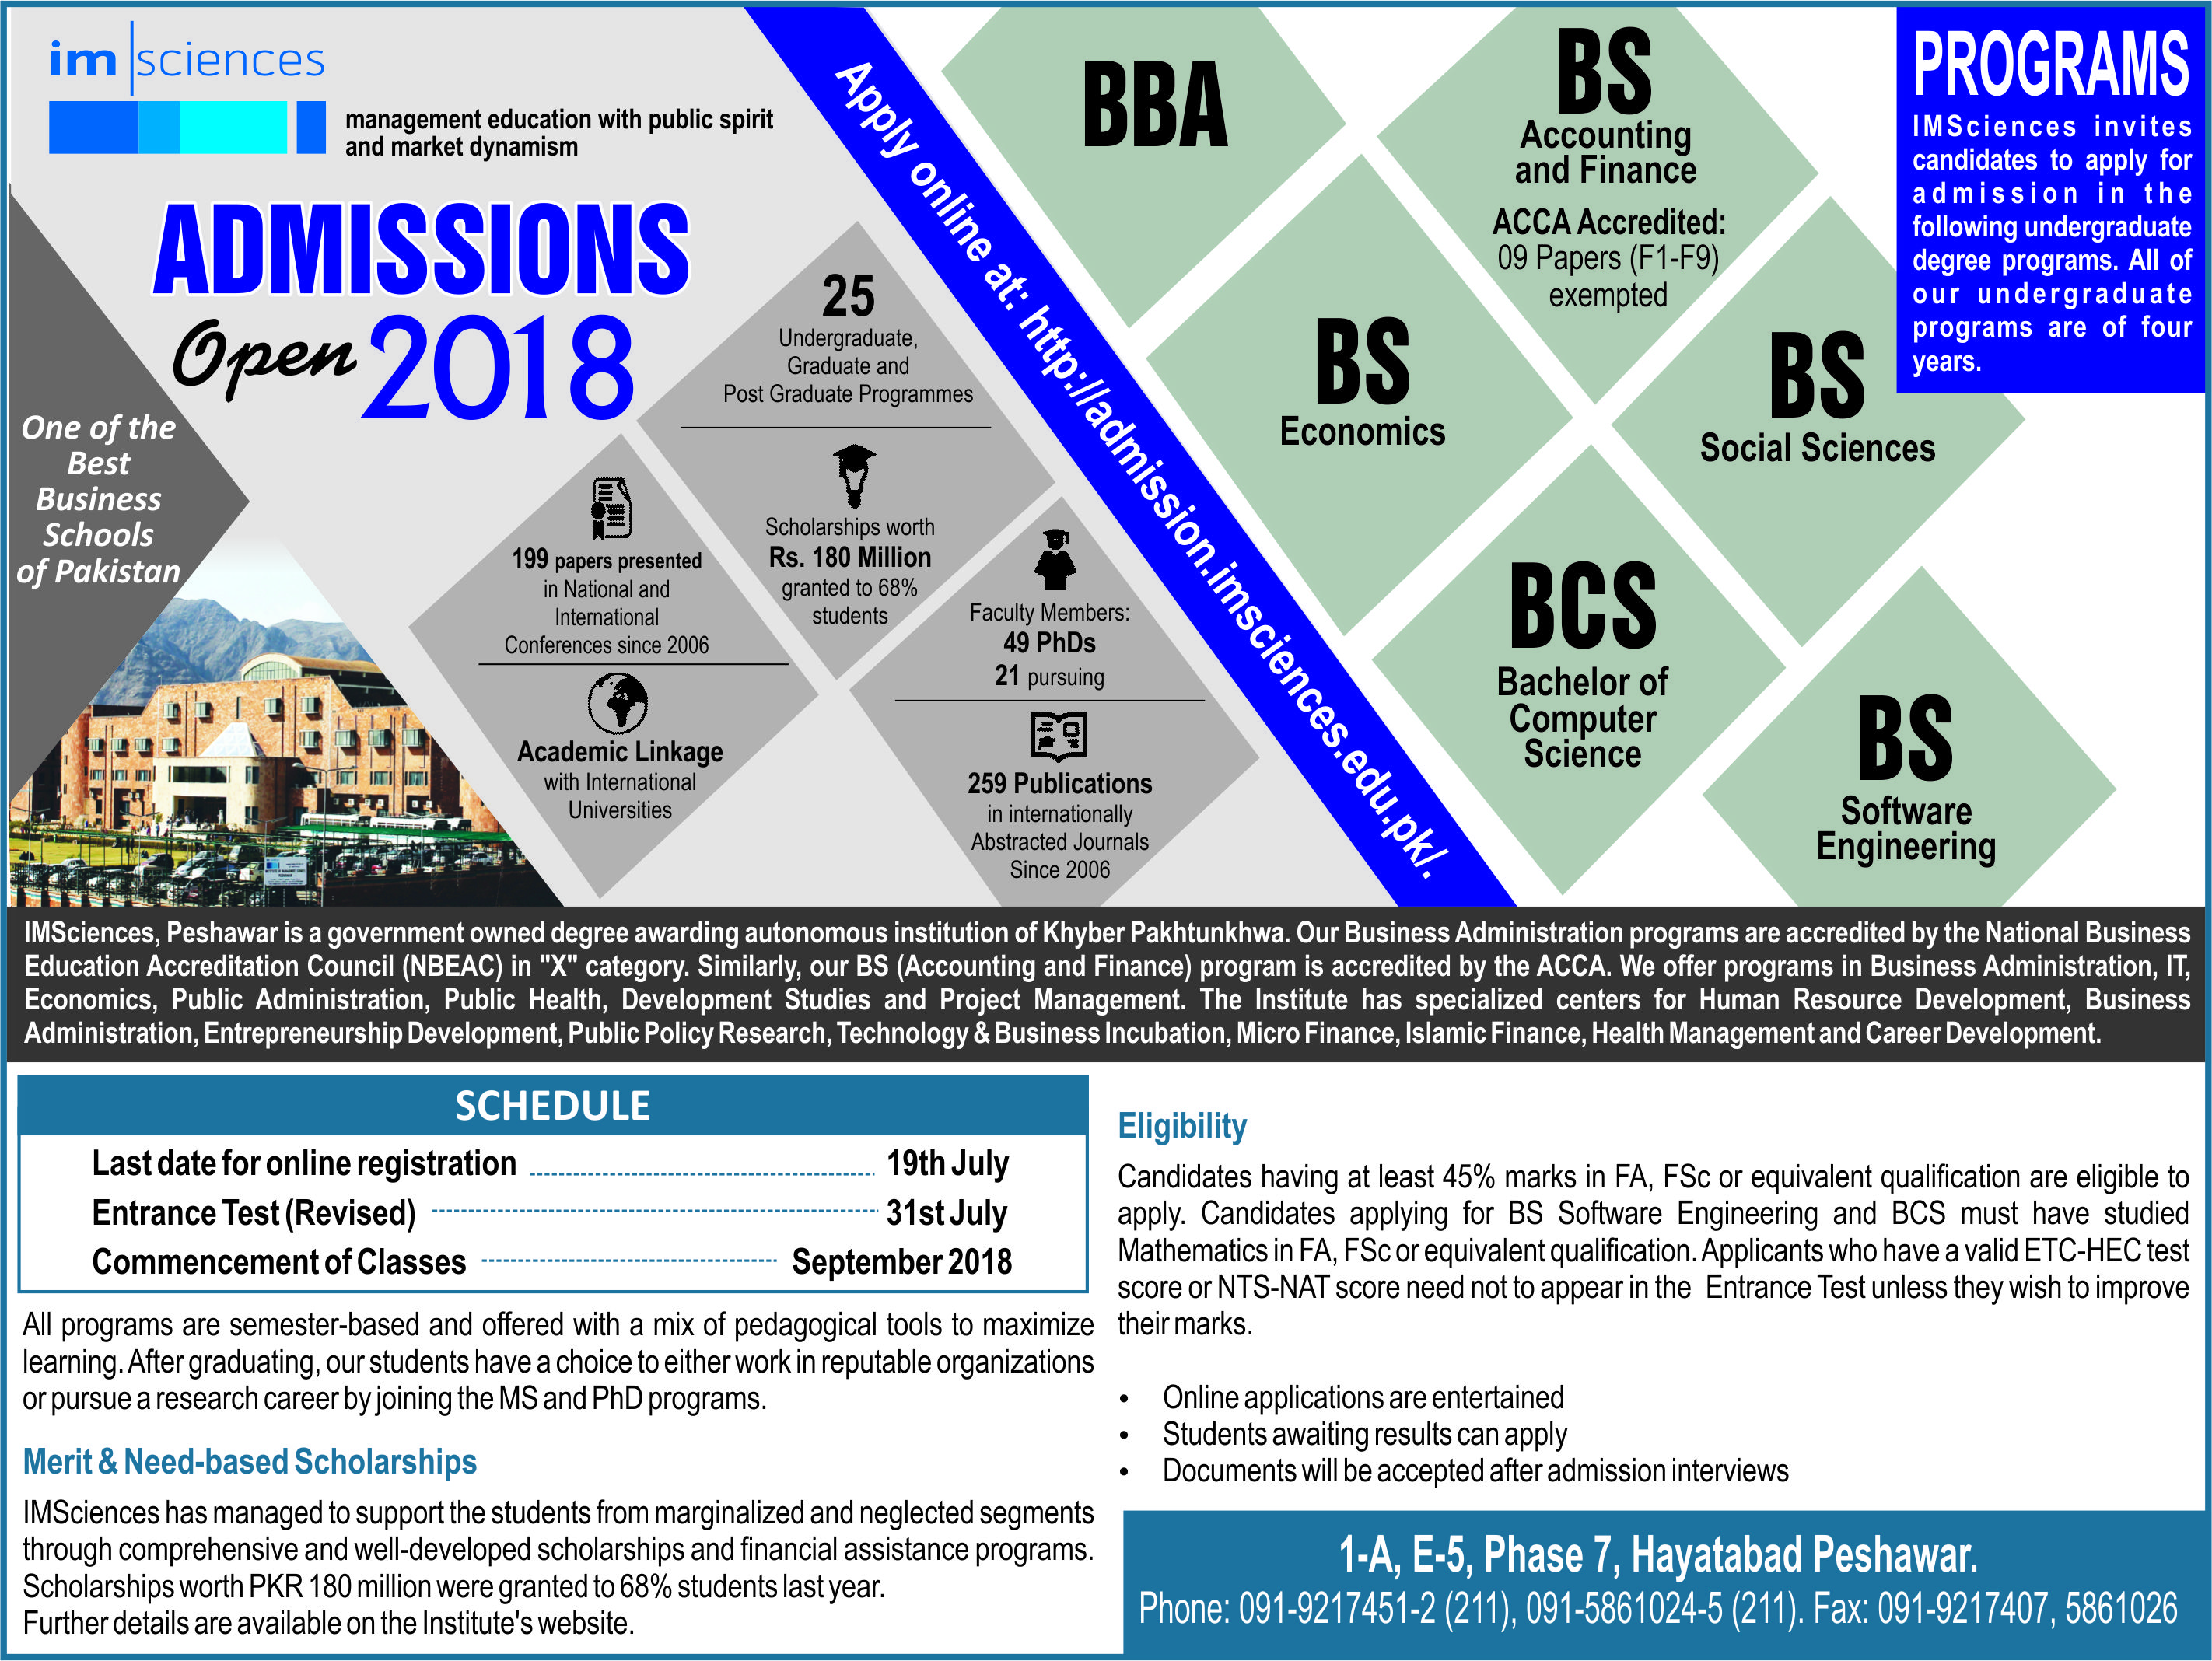 IMSciences Peshawar Admission Advertisement 2018